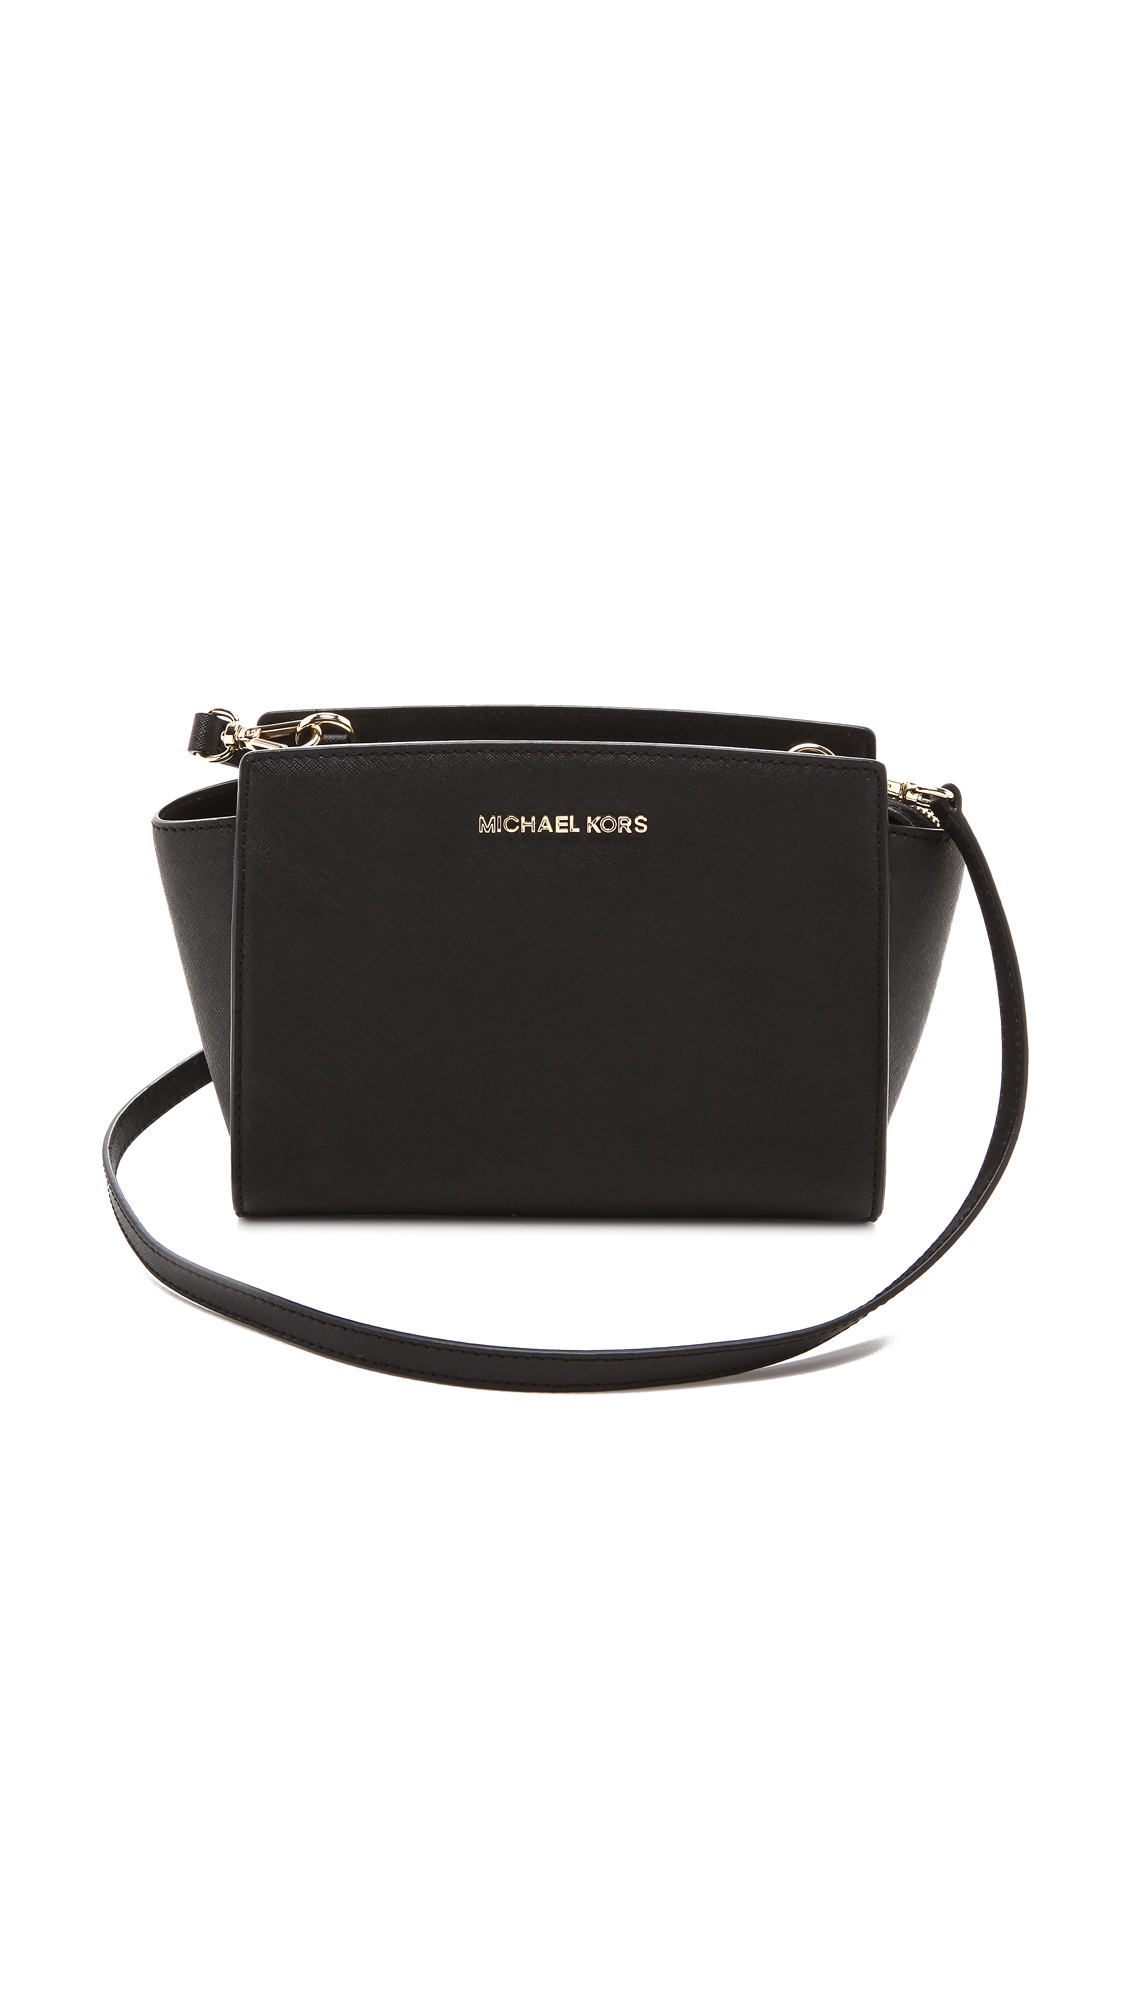 michael kors tote black white mk bags outlet in singapore